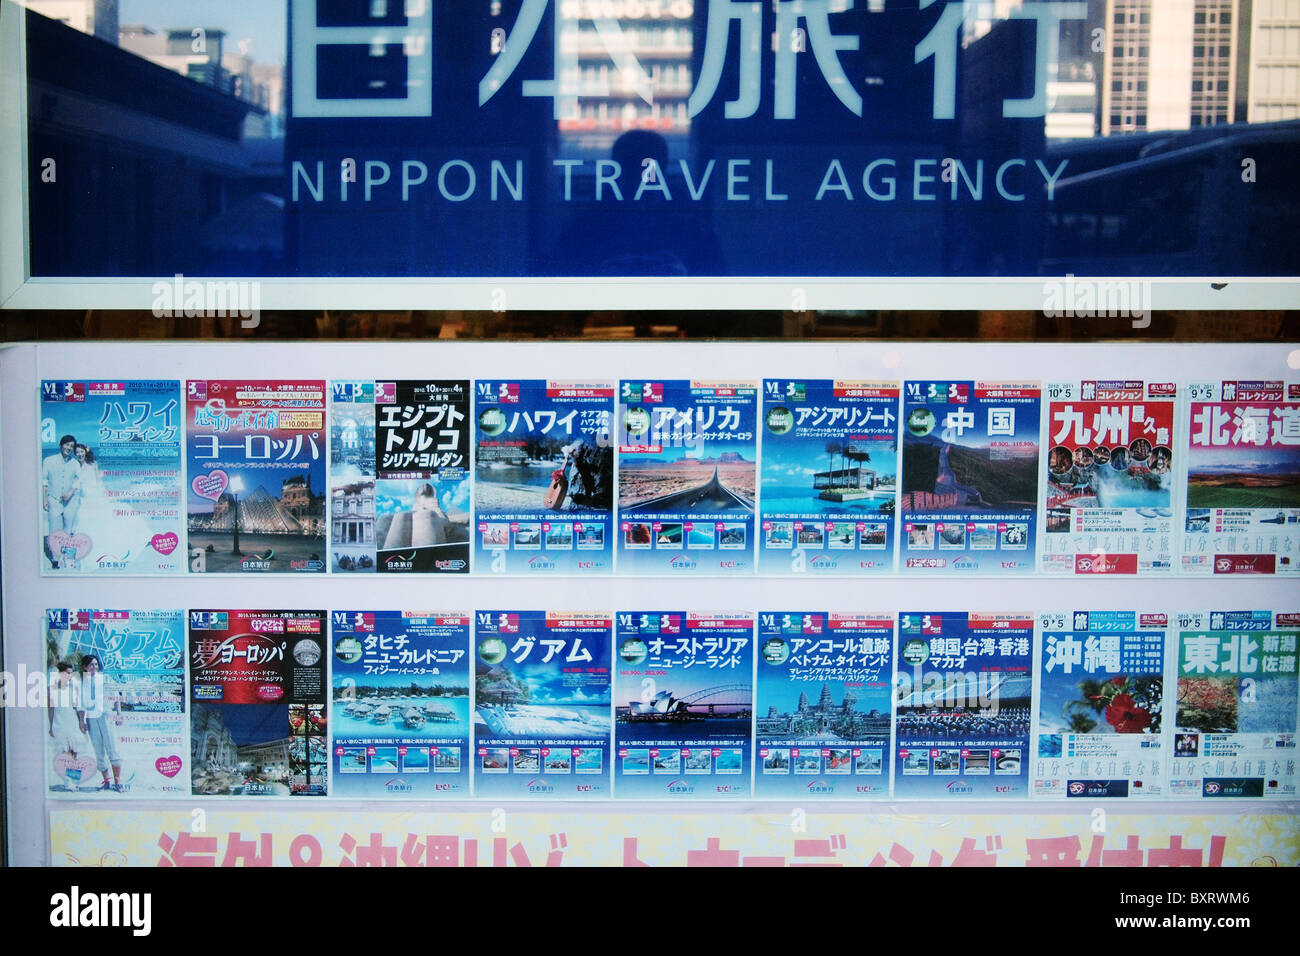 Nippon travel agency turismo vacanze poster in Giappone Immagini Stock